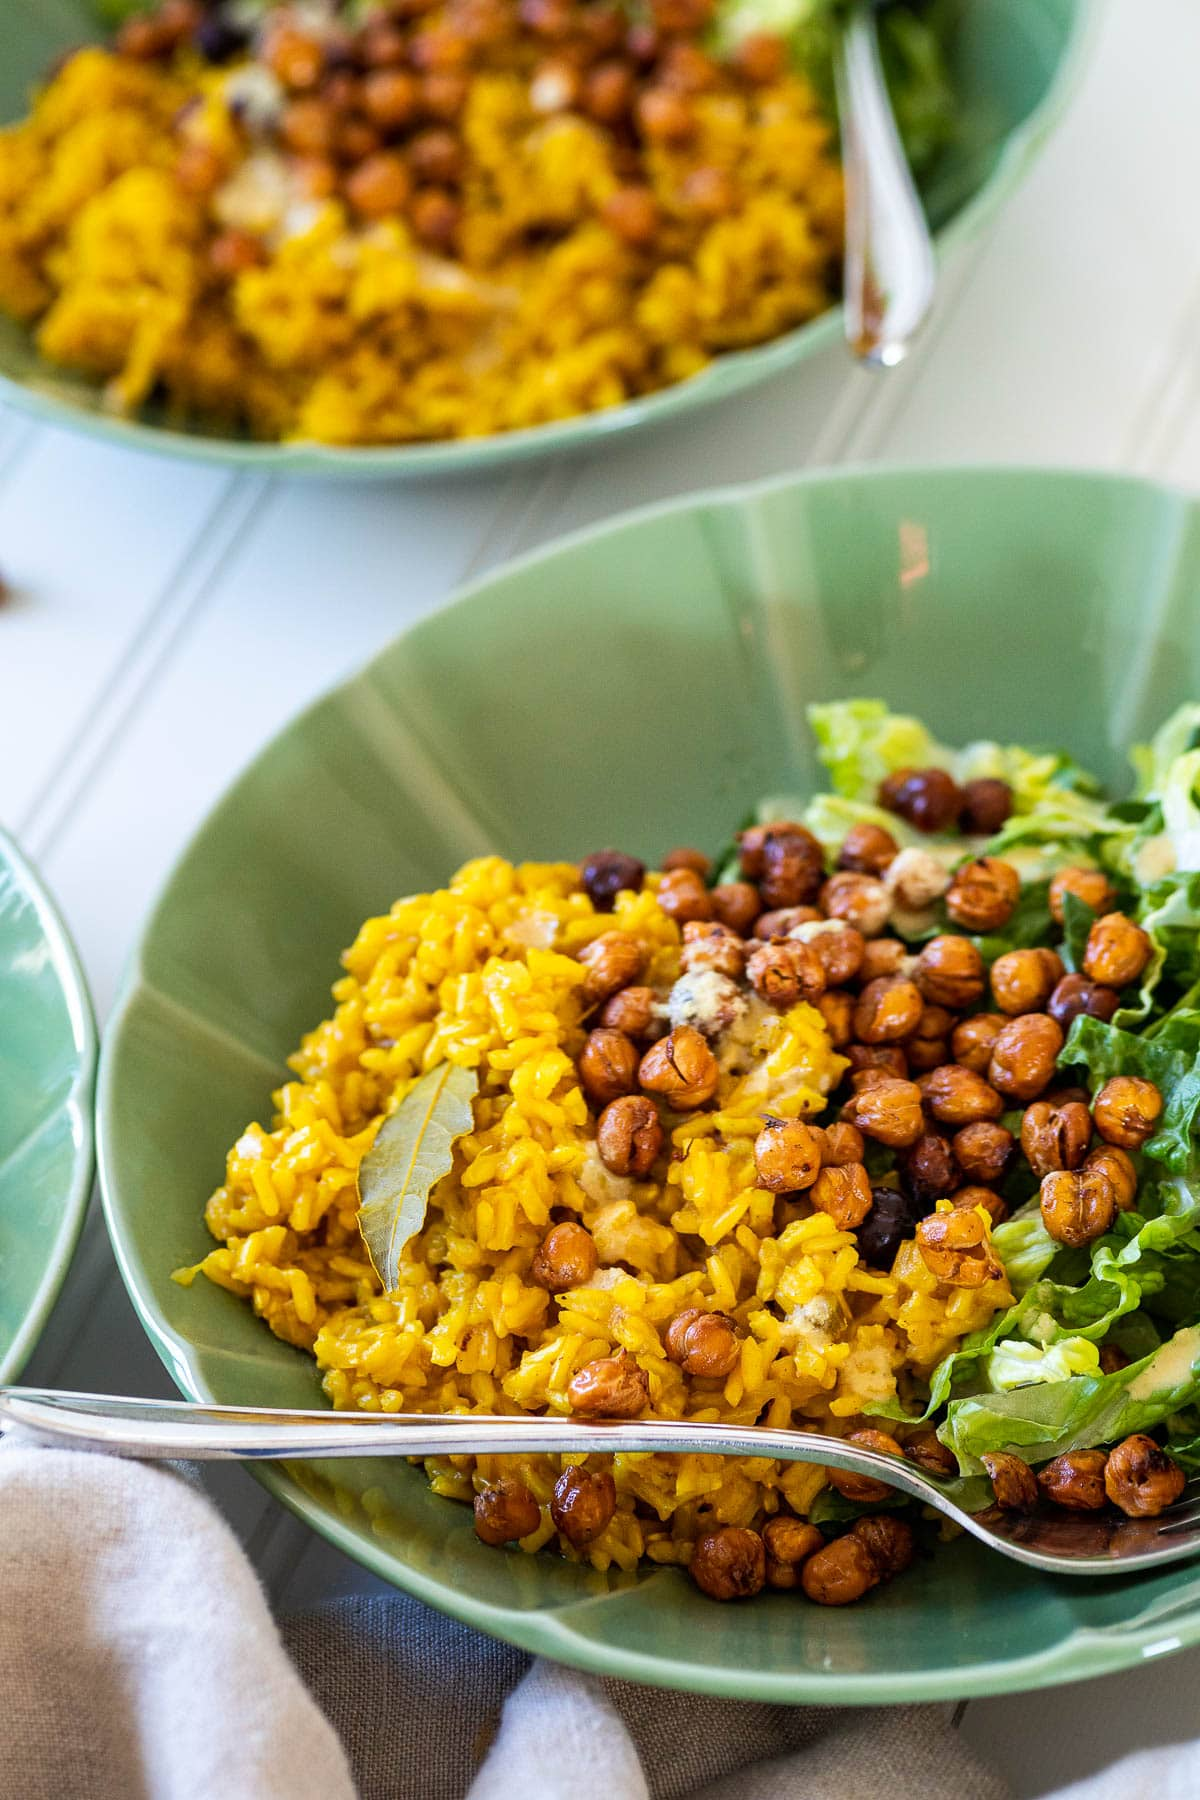 A bowl with turmeric rice, lettuce and crispy chickpeas in front of another bowl.